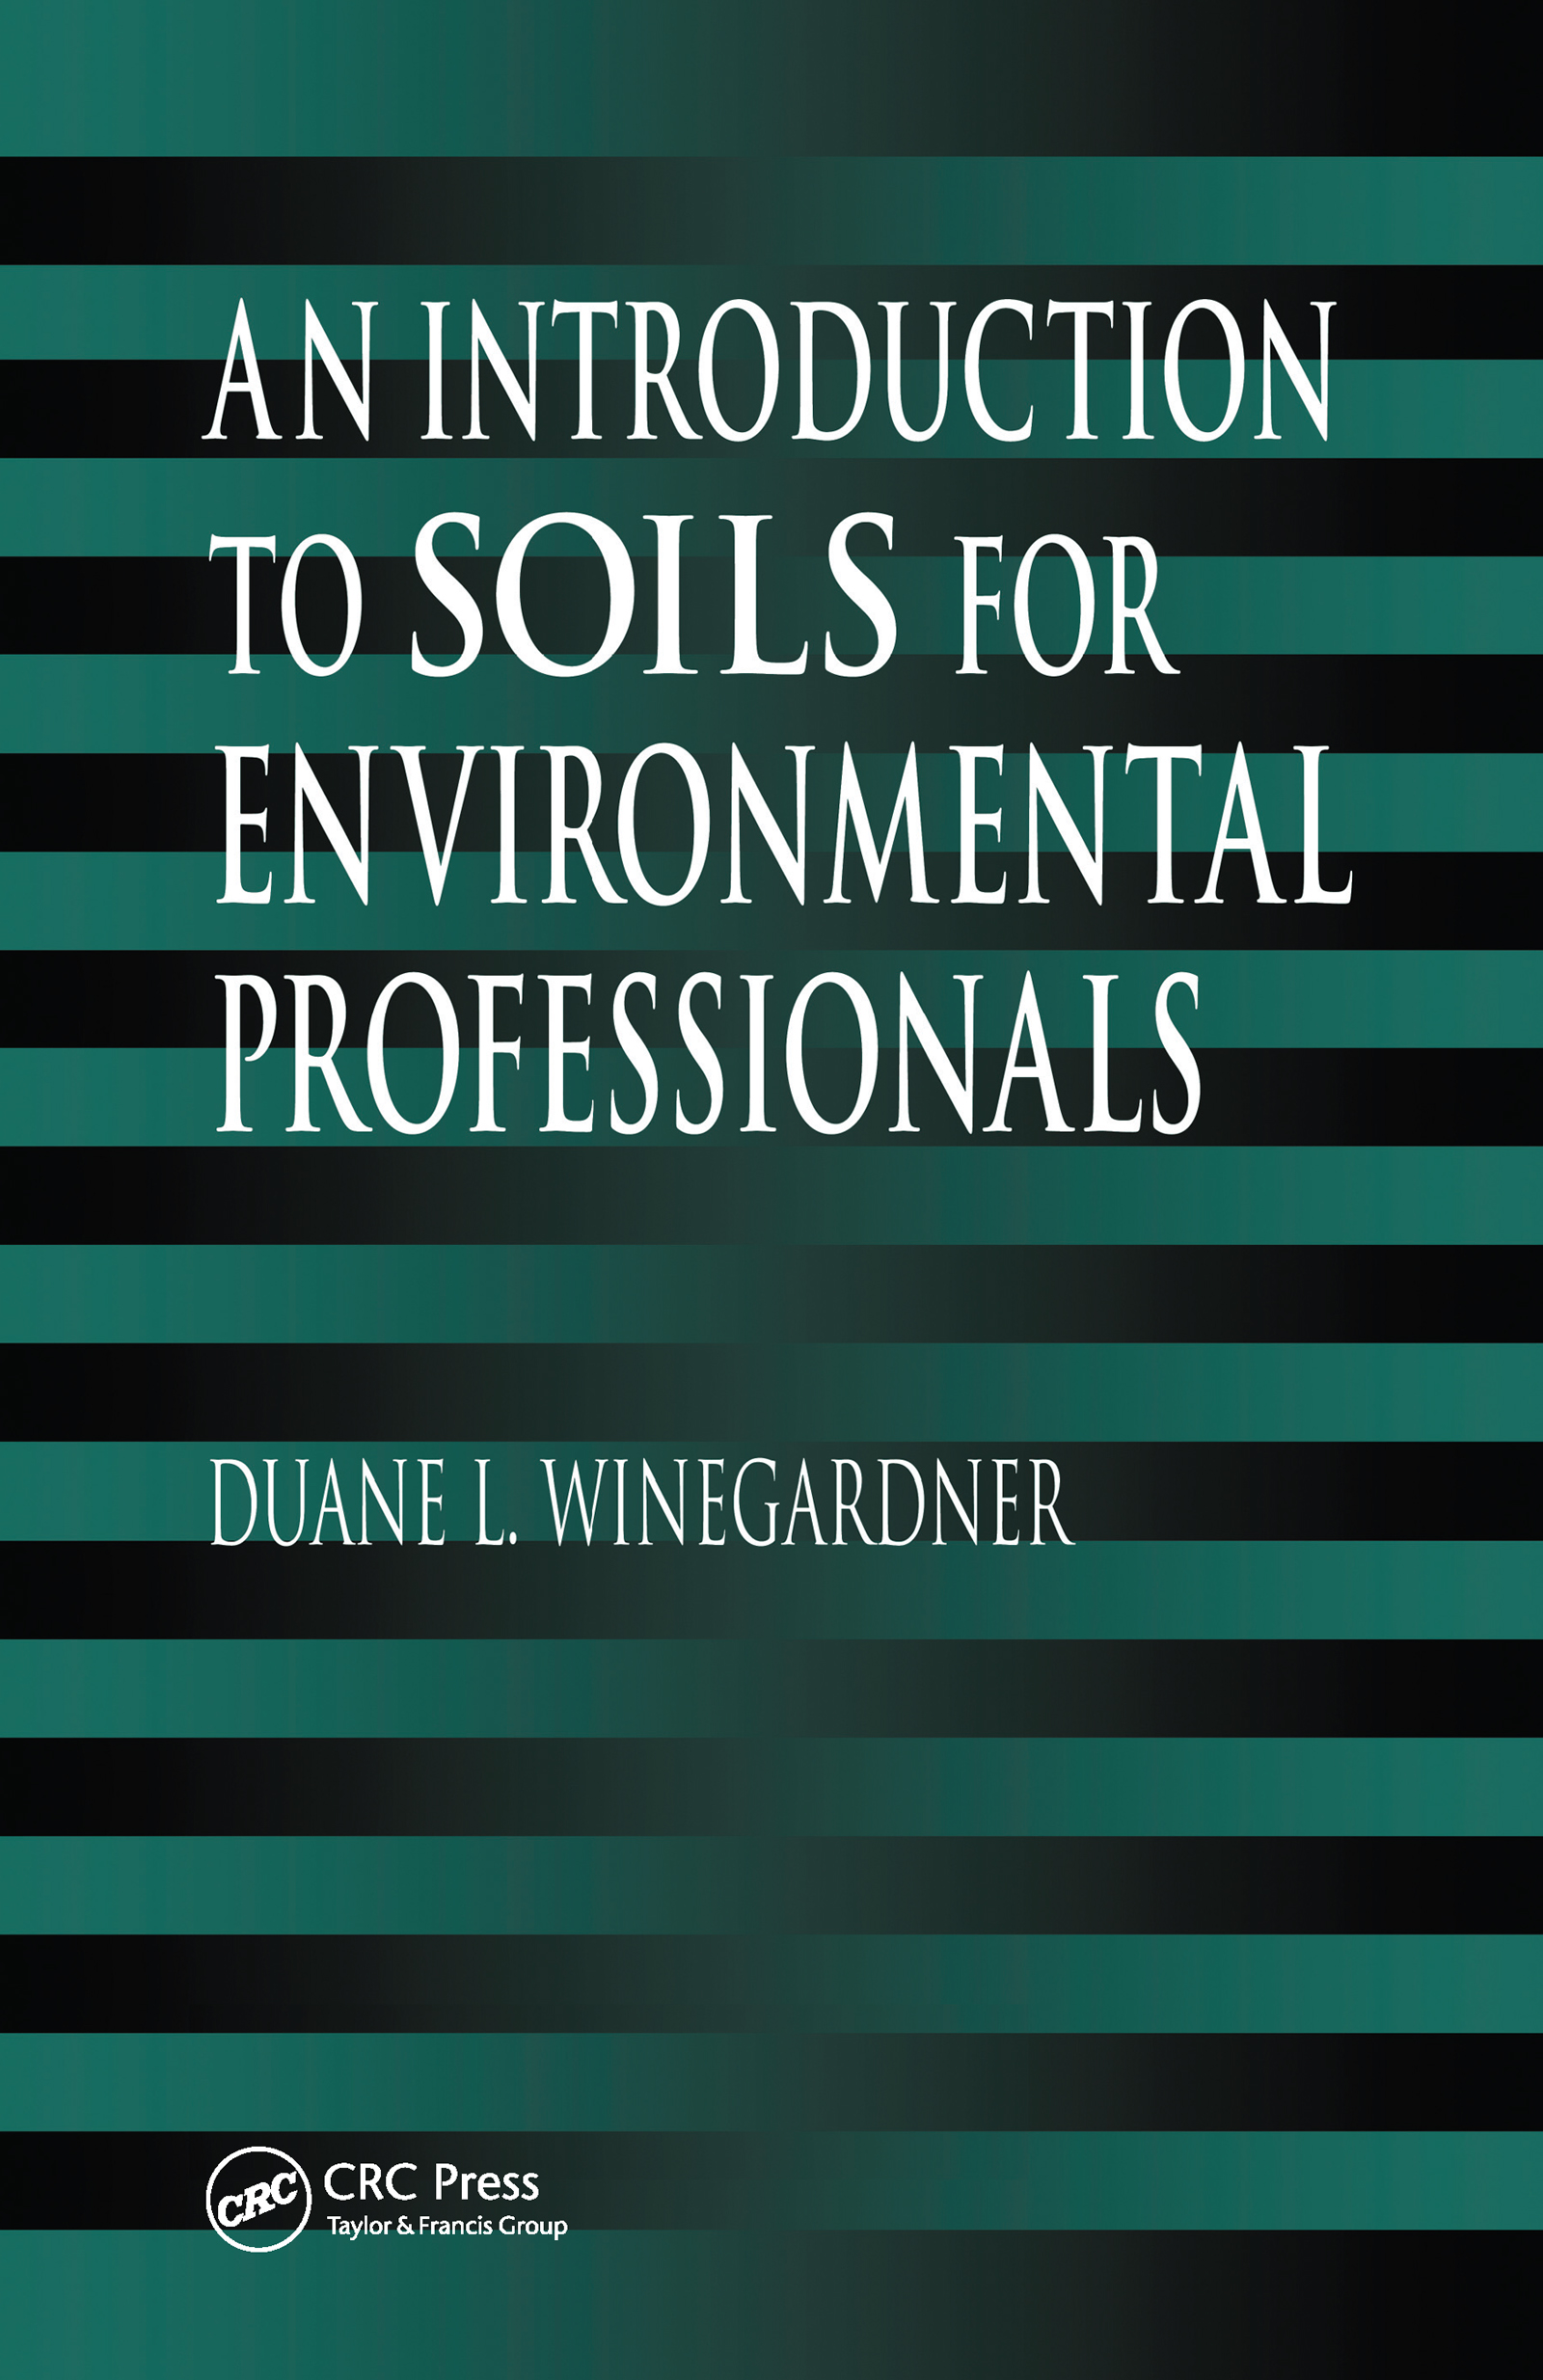 An Introduction to Soils for Environmental Professionals